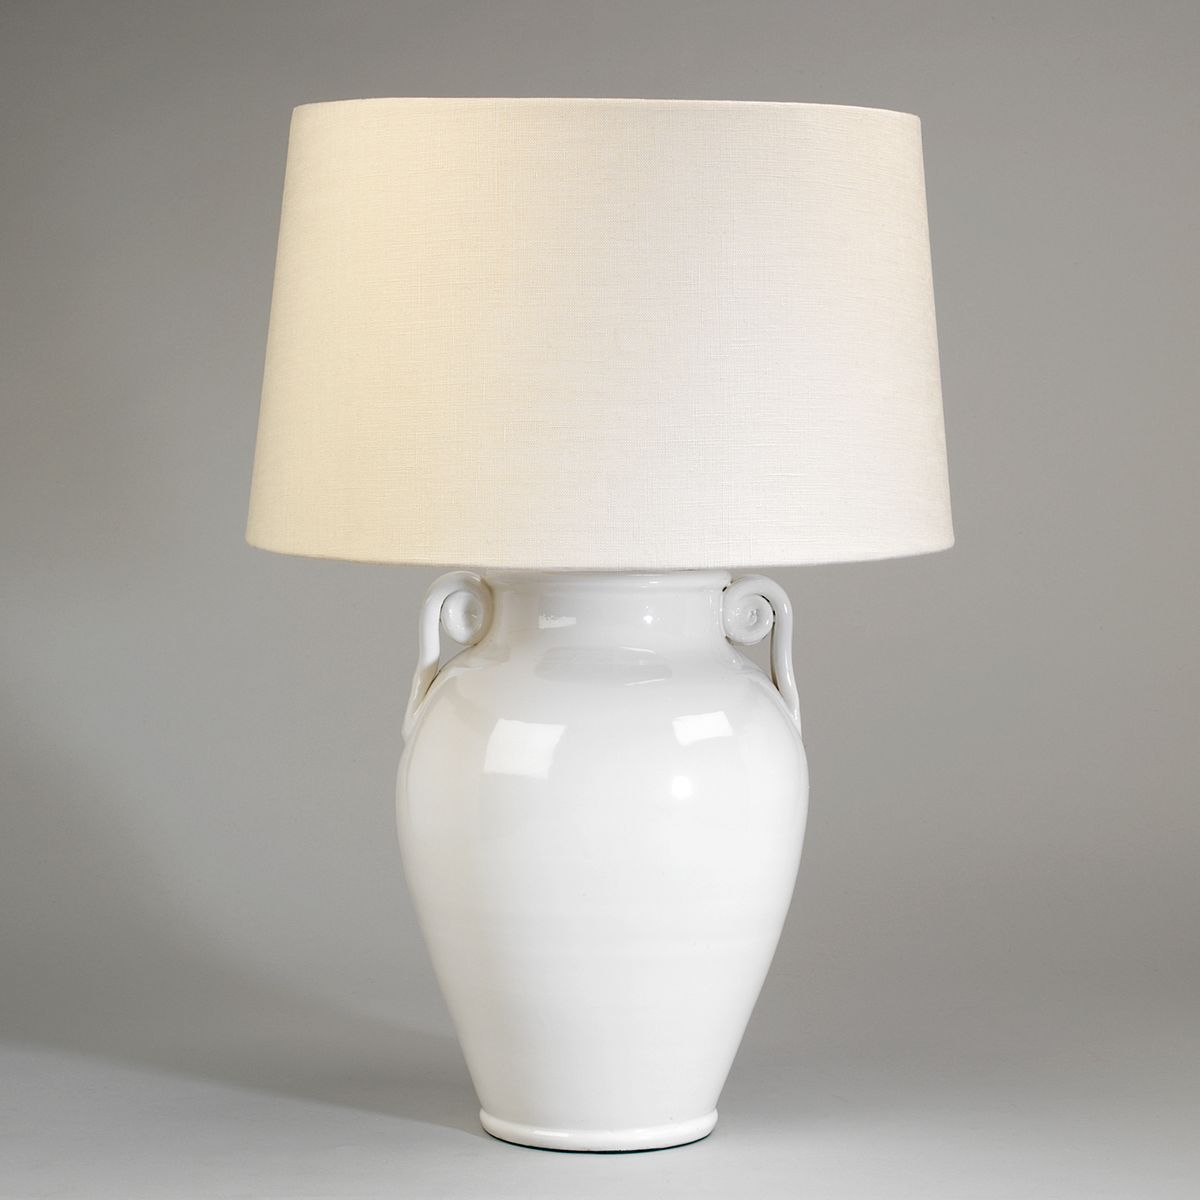 Acerra Ceramic Vase Table Lamp | Nicholas Engert Interiors